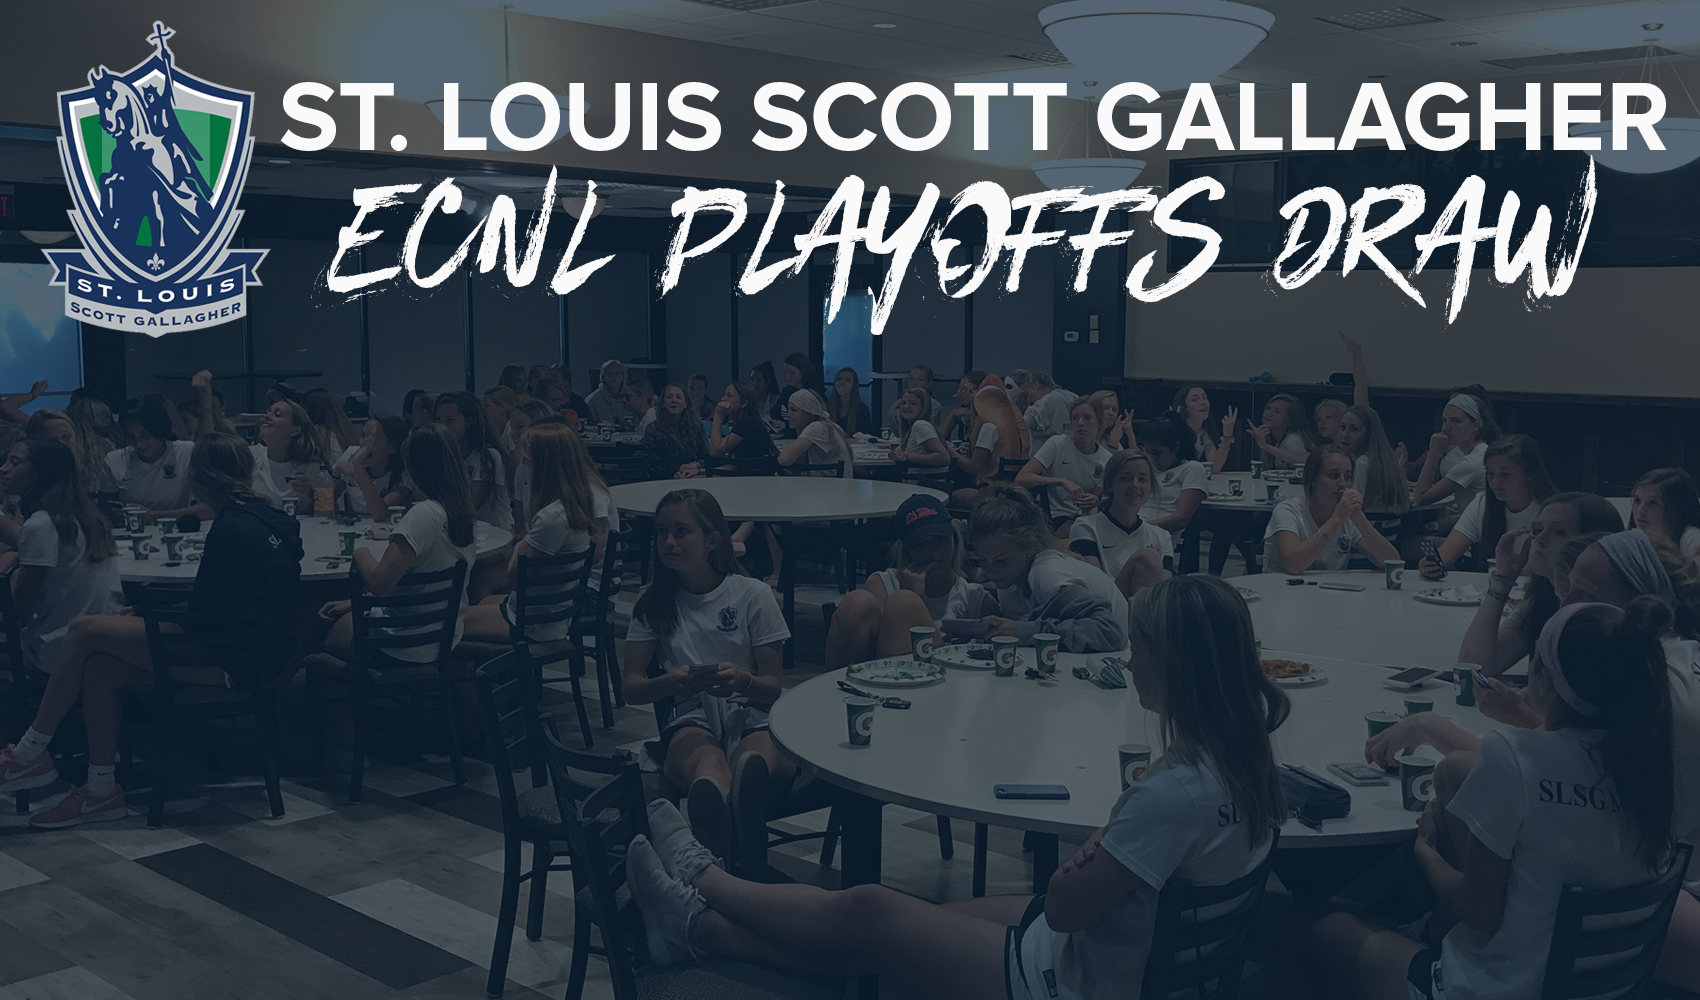 SLSG ECNL Program Gathers for ECNL Playoffs Draw